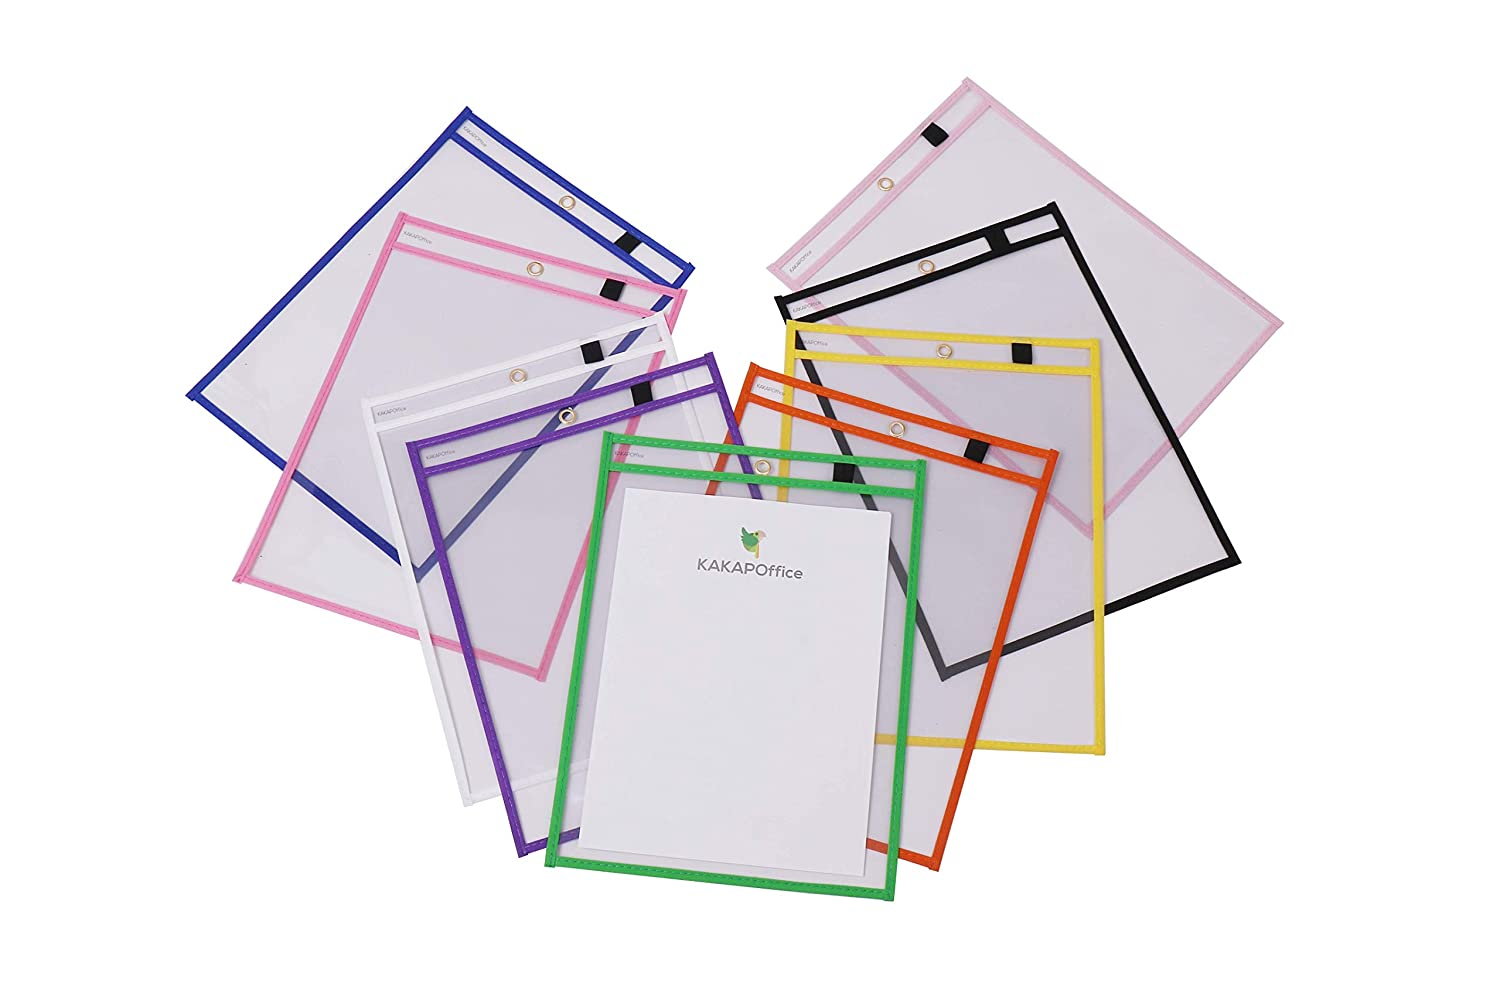 10 Pack Clear Reusable Dry Erase Pockets: Plastic Protector Sleeves for Paper Worksheets Multicolored Artwork or Office Documents School Organization and Teacher Supplies for Classroom or Office